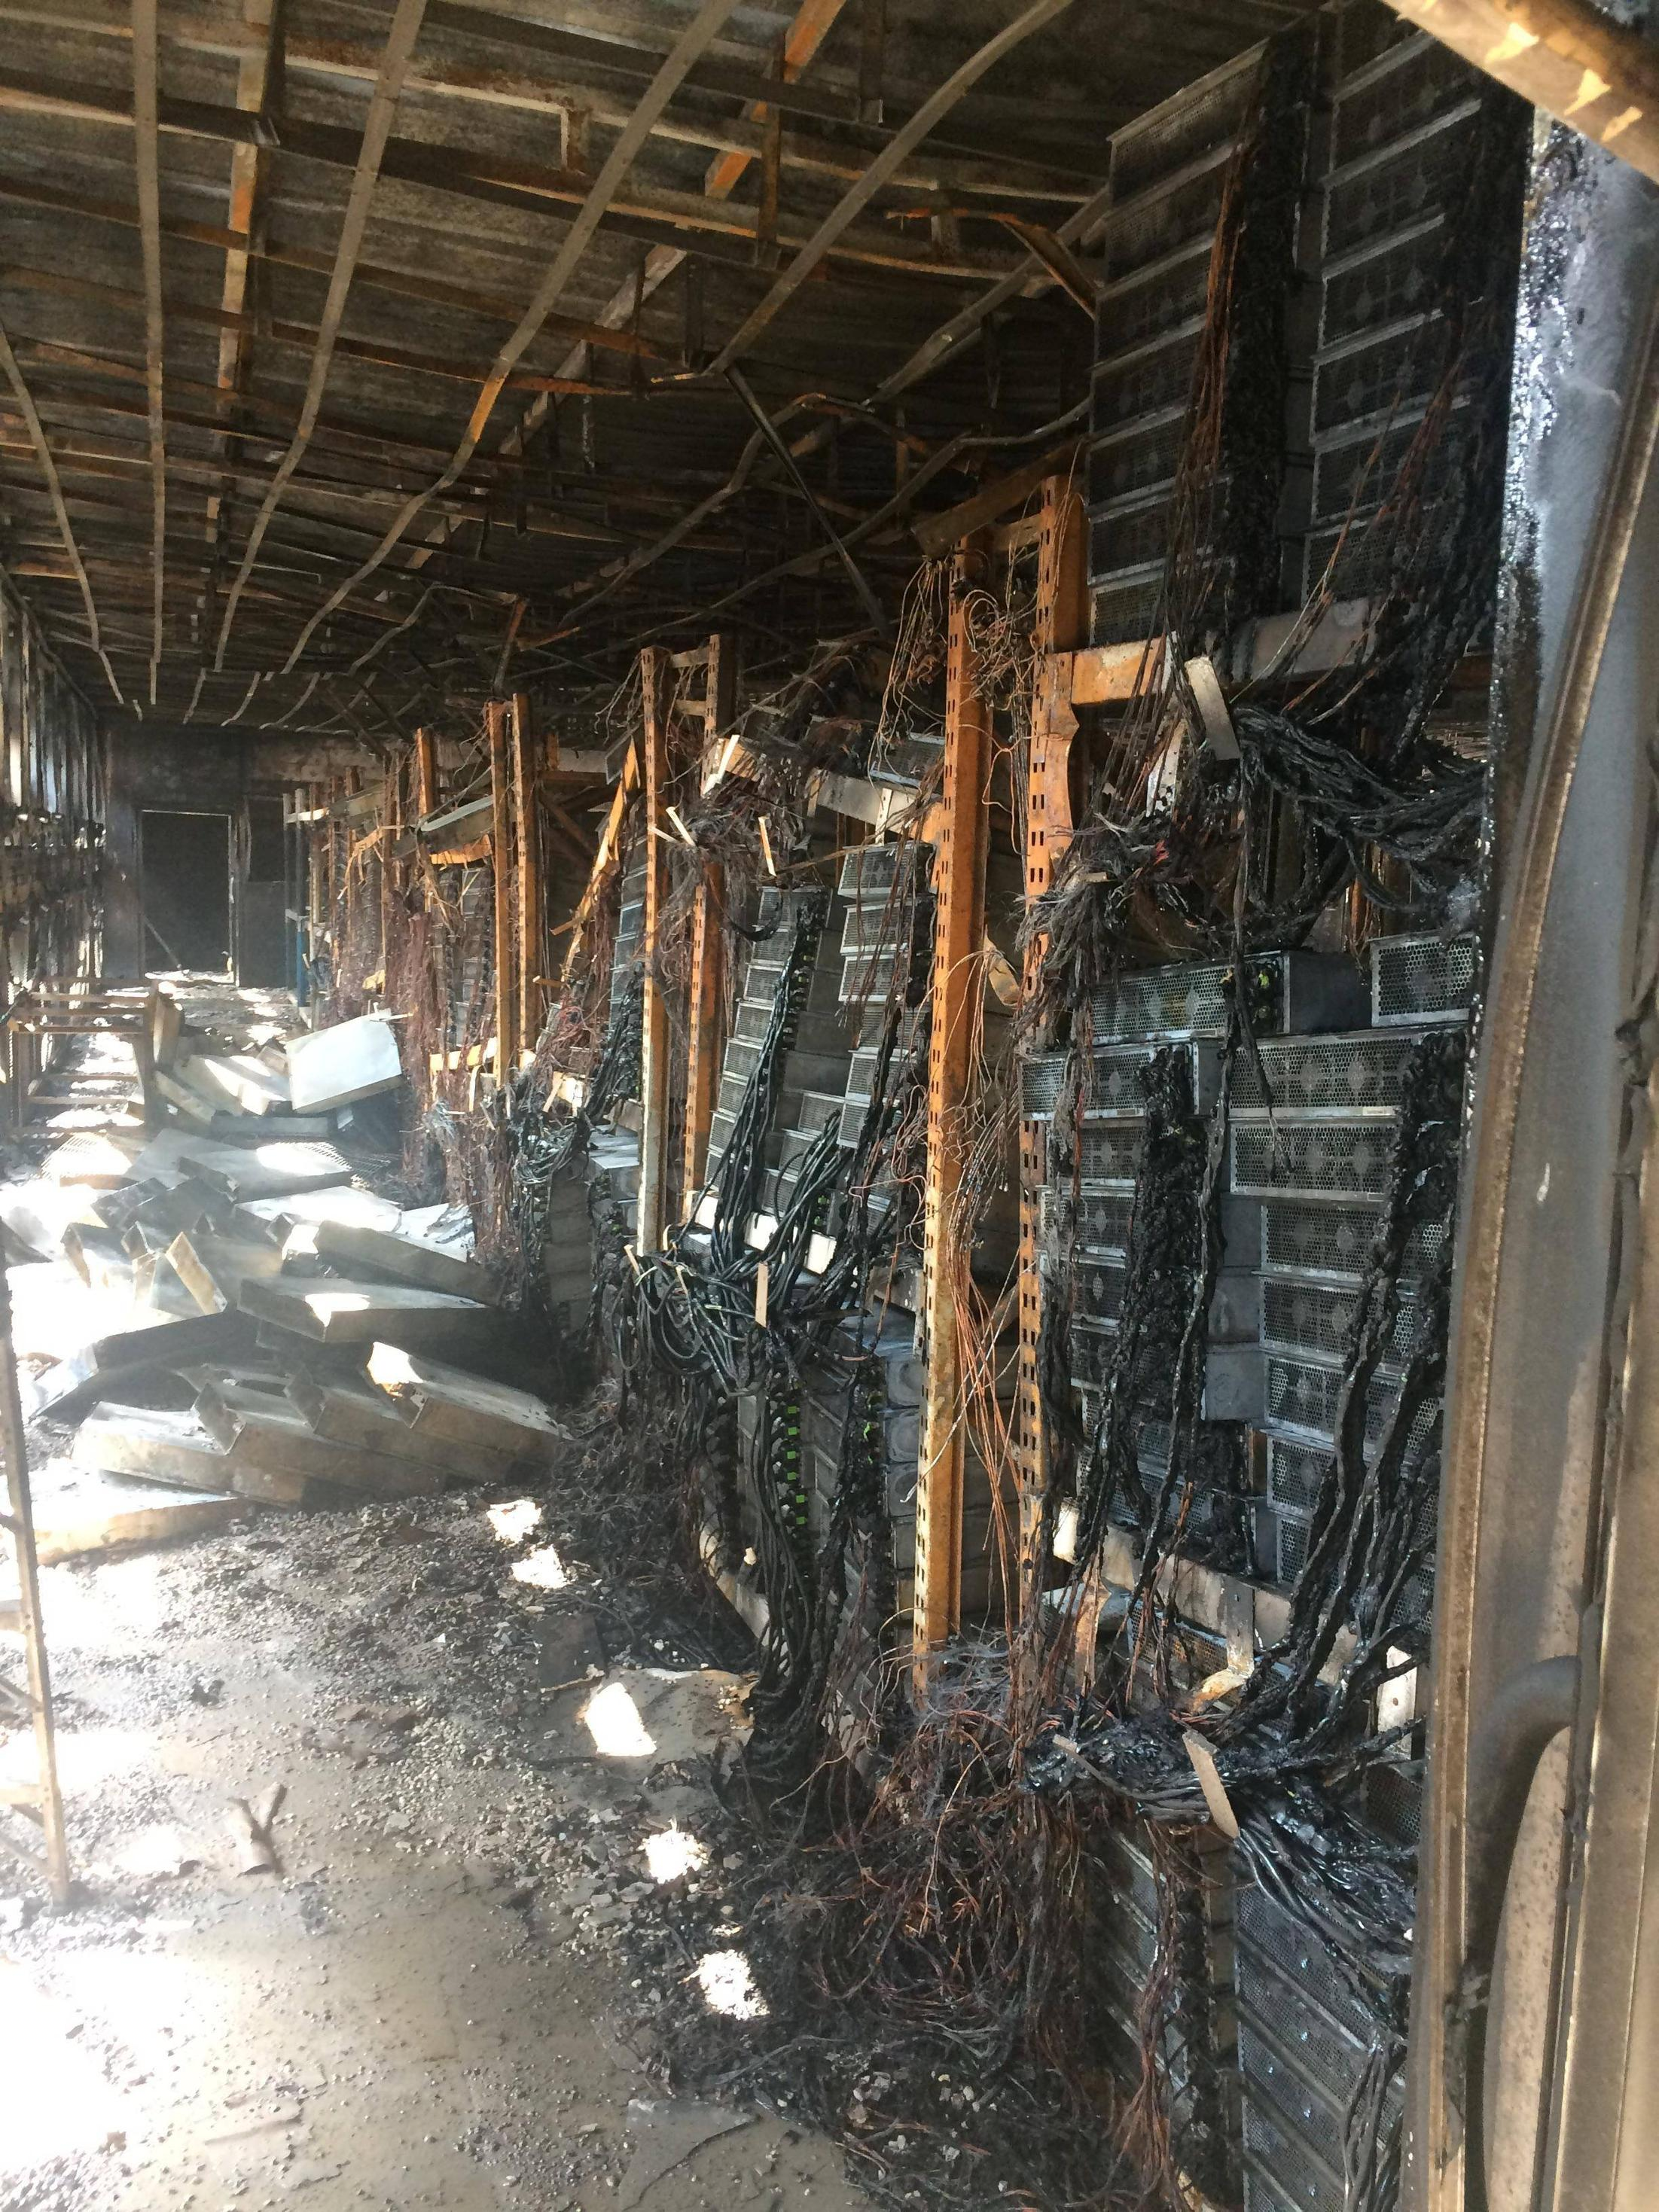 http://cointelegraph.com/news/112886/proof-of-burn-bitcoin-mining-company-in-thailand-destroyed-by-fire